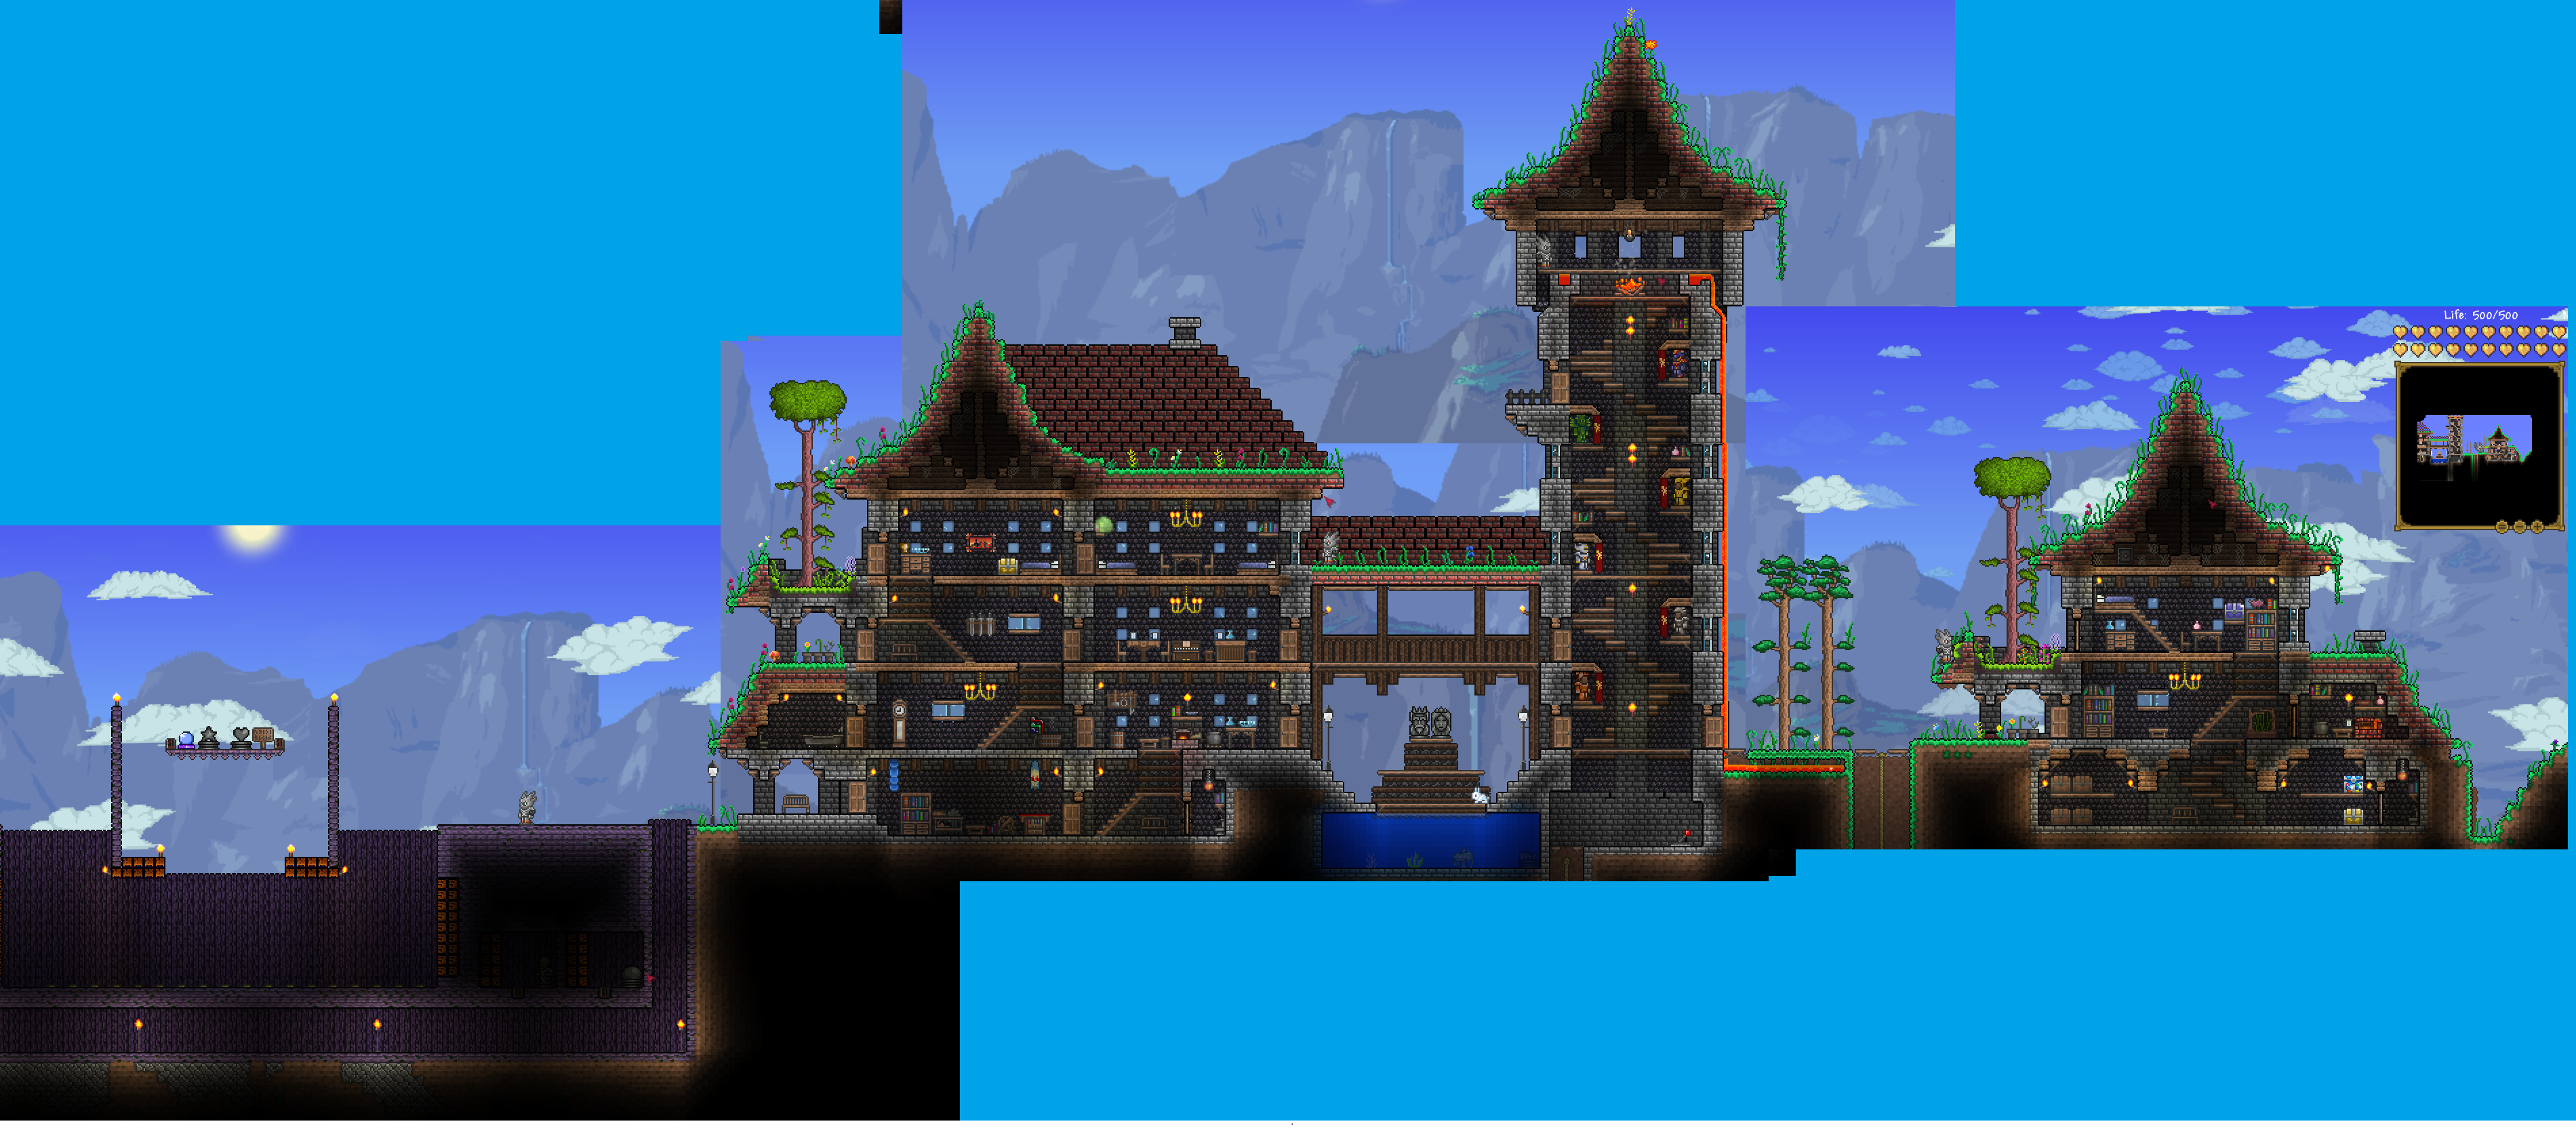 Pin by Nicky Murphy on terraria Pinterest